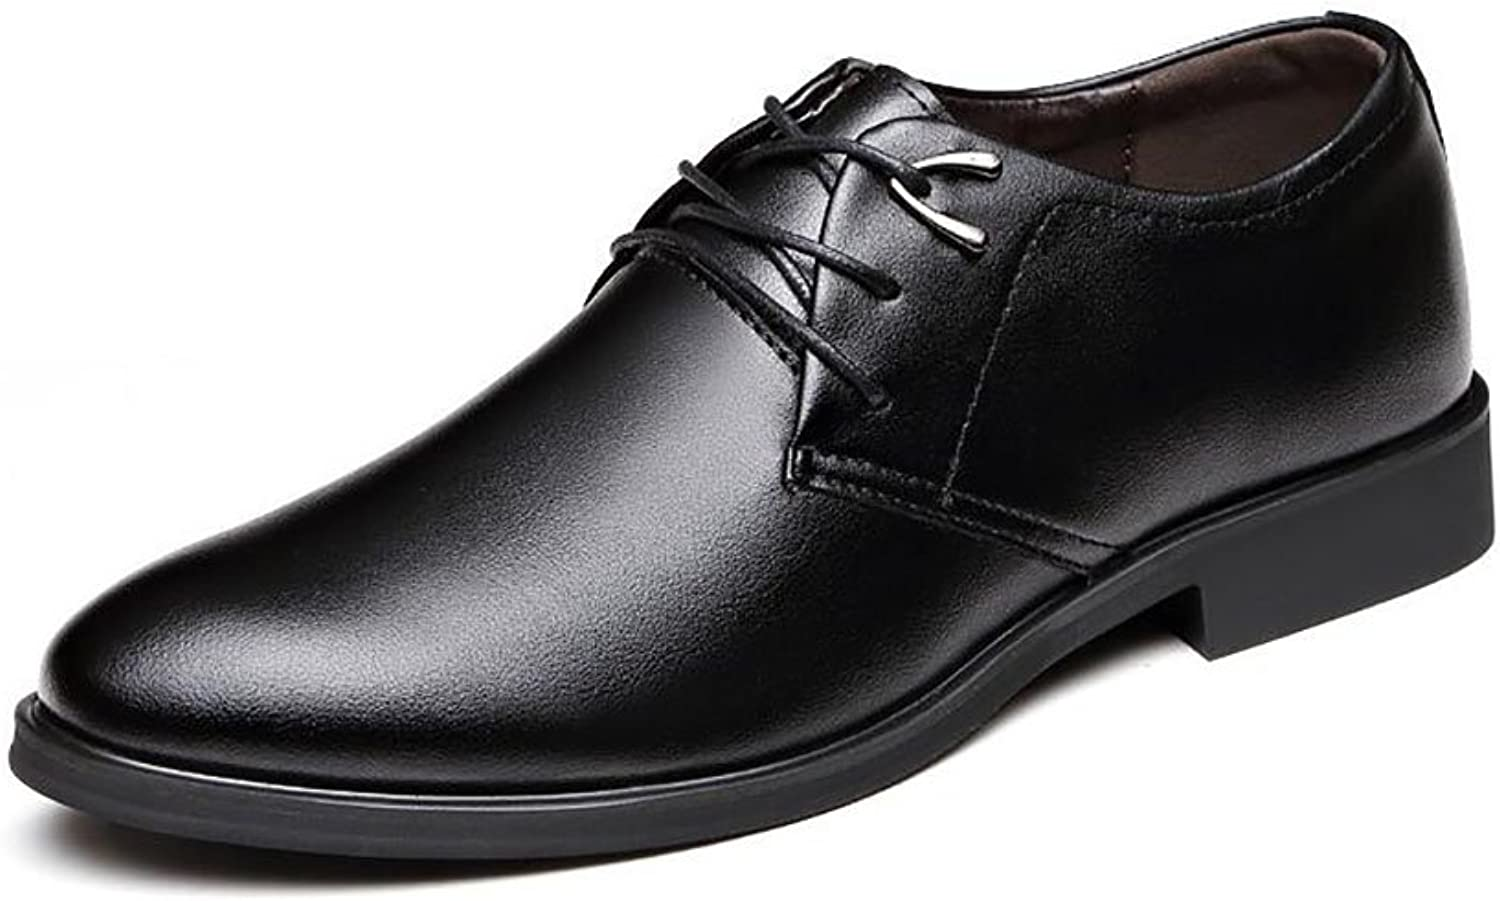 Men's shoes PU Spring Fall Comfort Oxfords Formal Business Work Comfy Moccasins Classic Lace up shoes Black Brown Men's shoes Leather